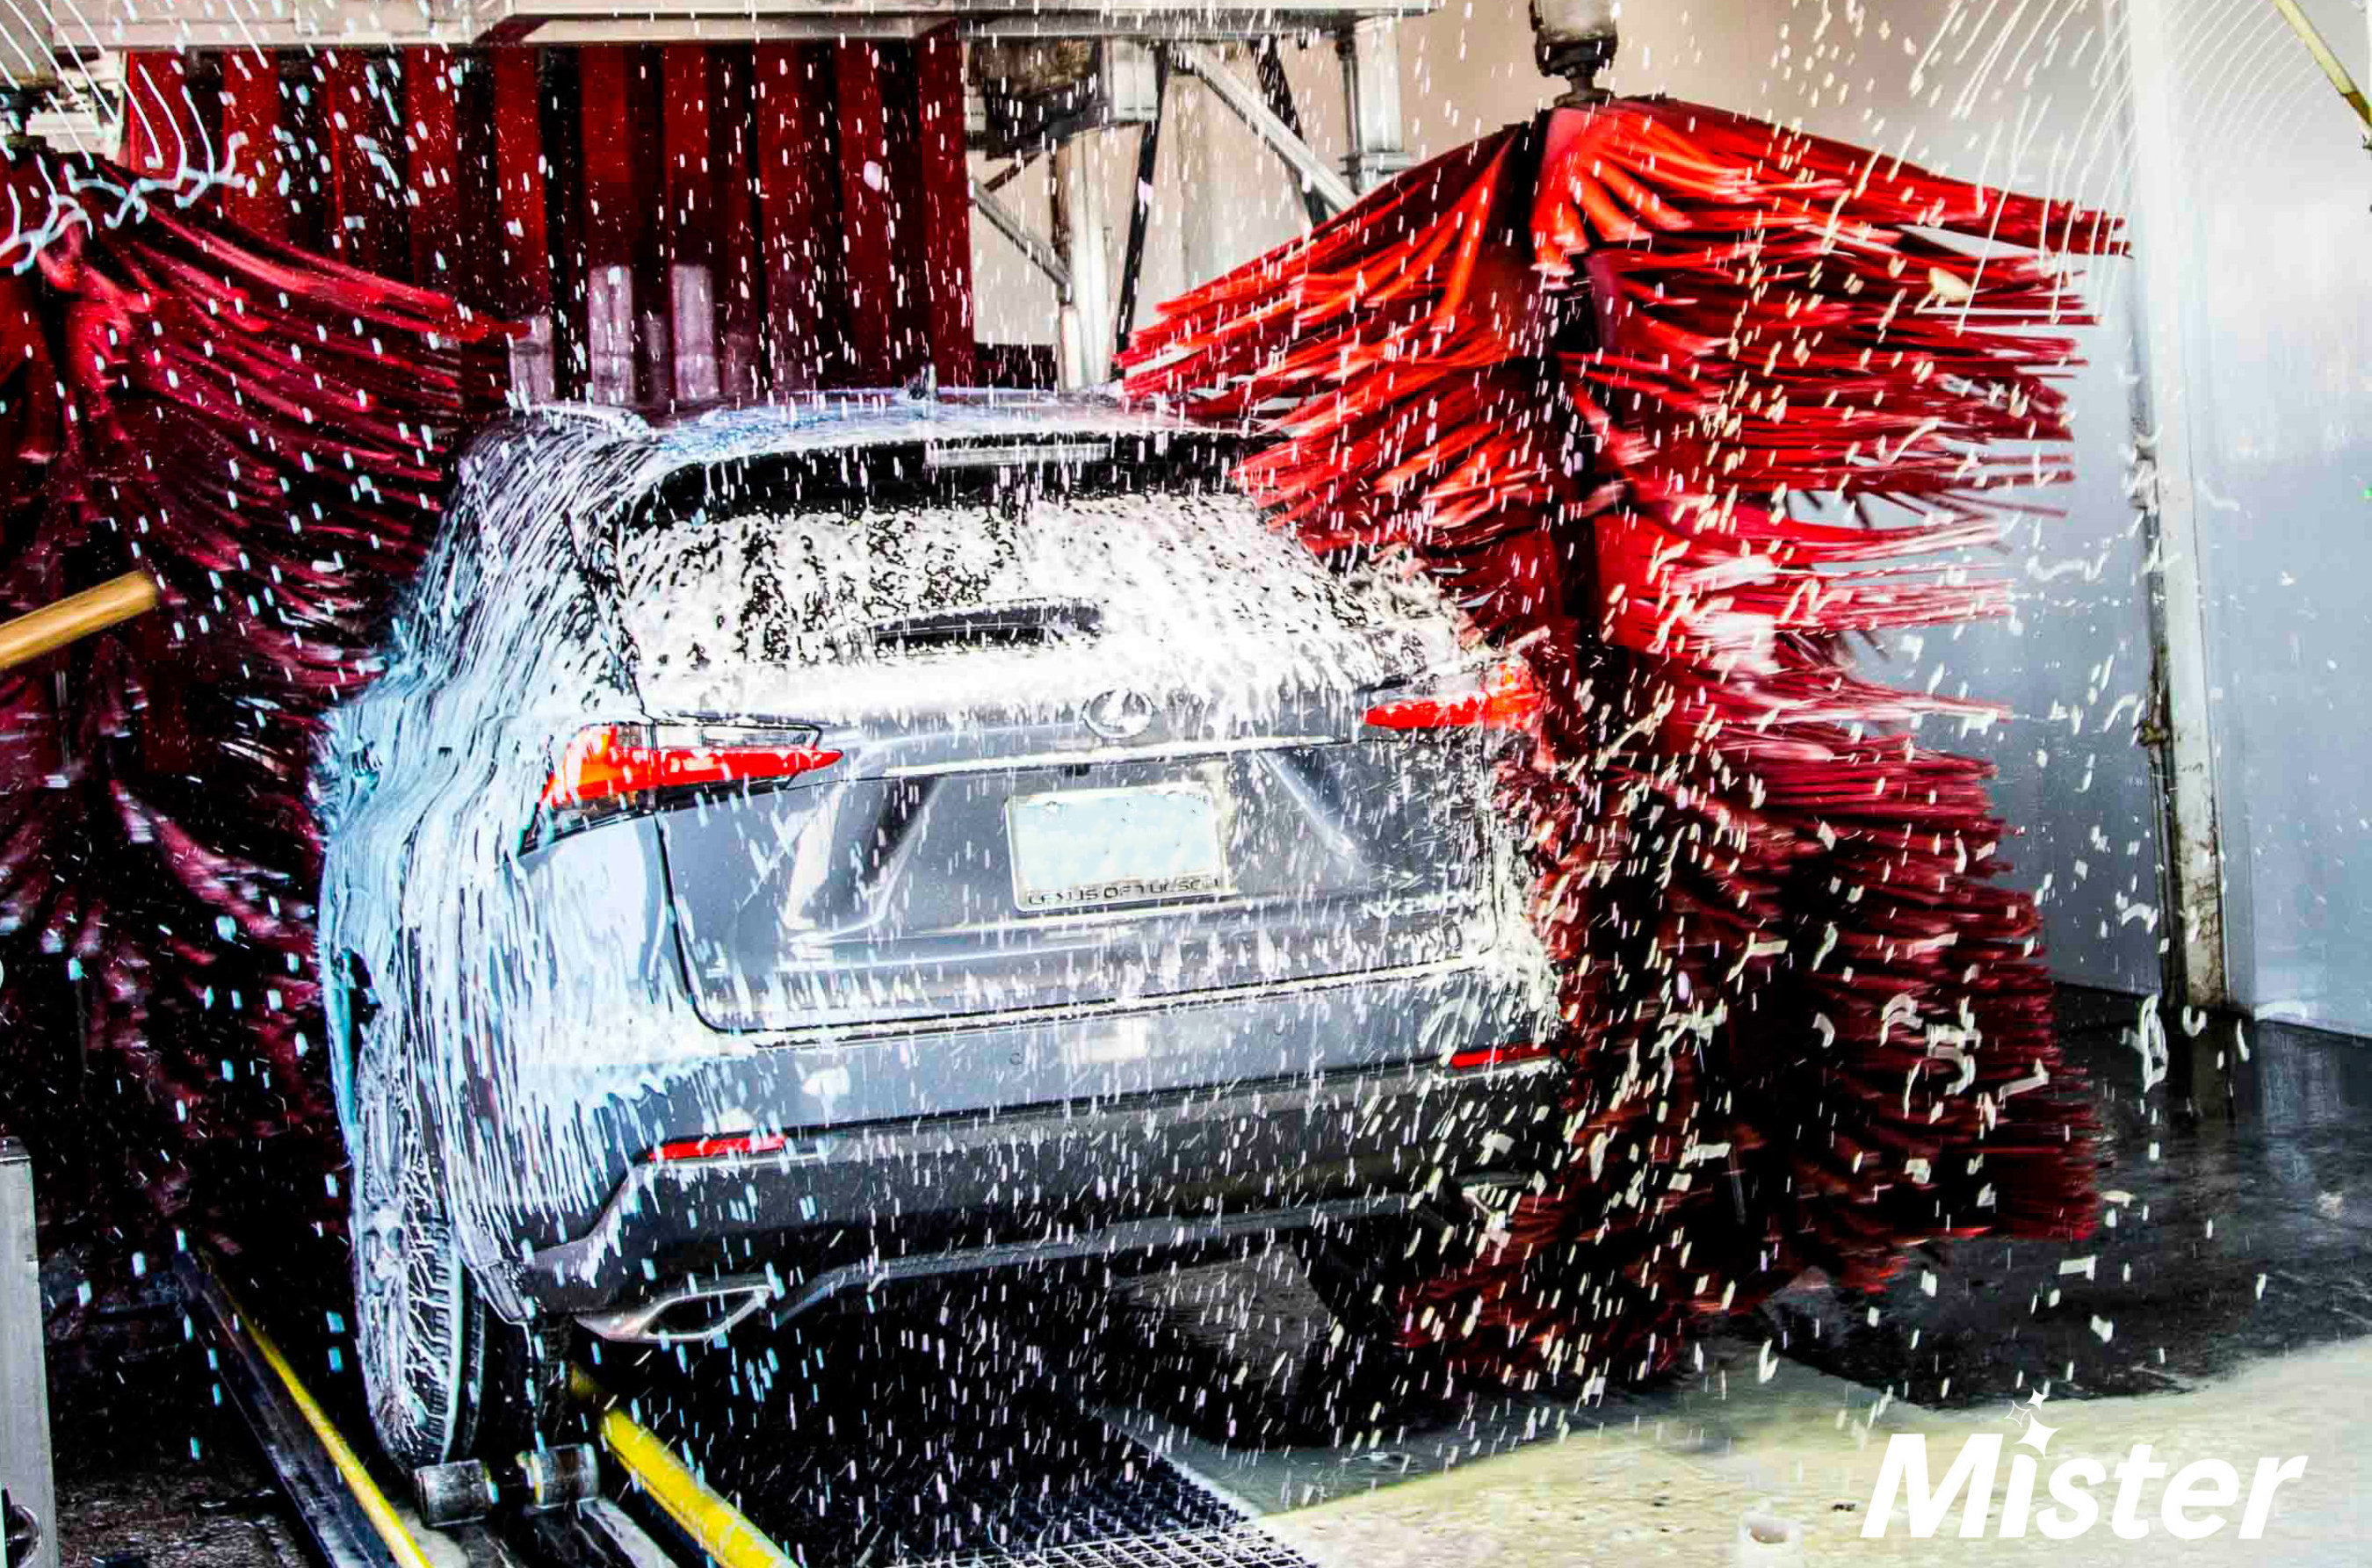 Mister Car Wash, headquartered in Tucson, Arizona, employs close to 7,000 associates in 20 states.